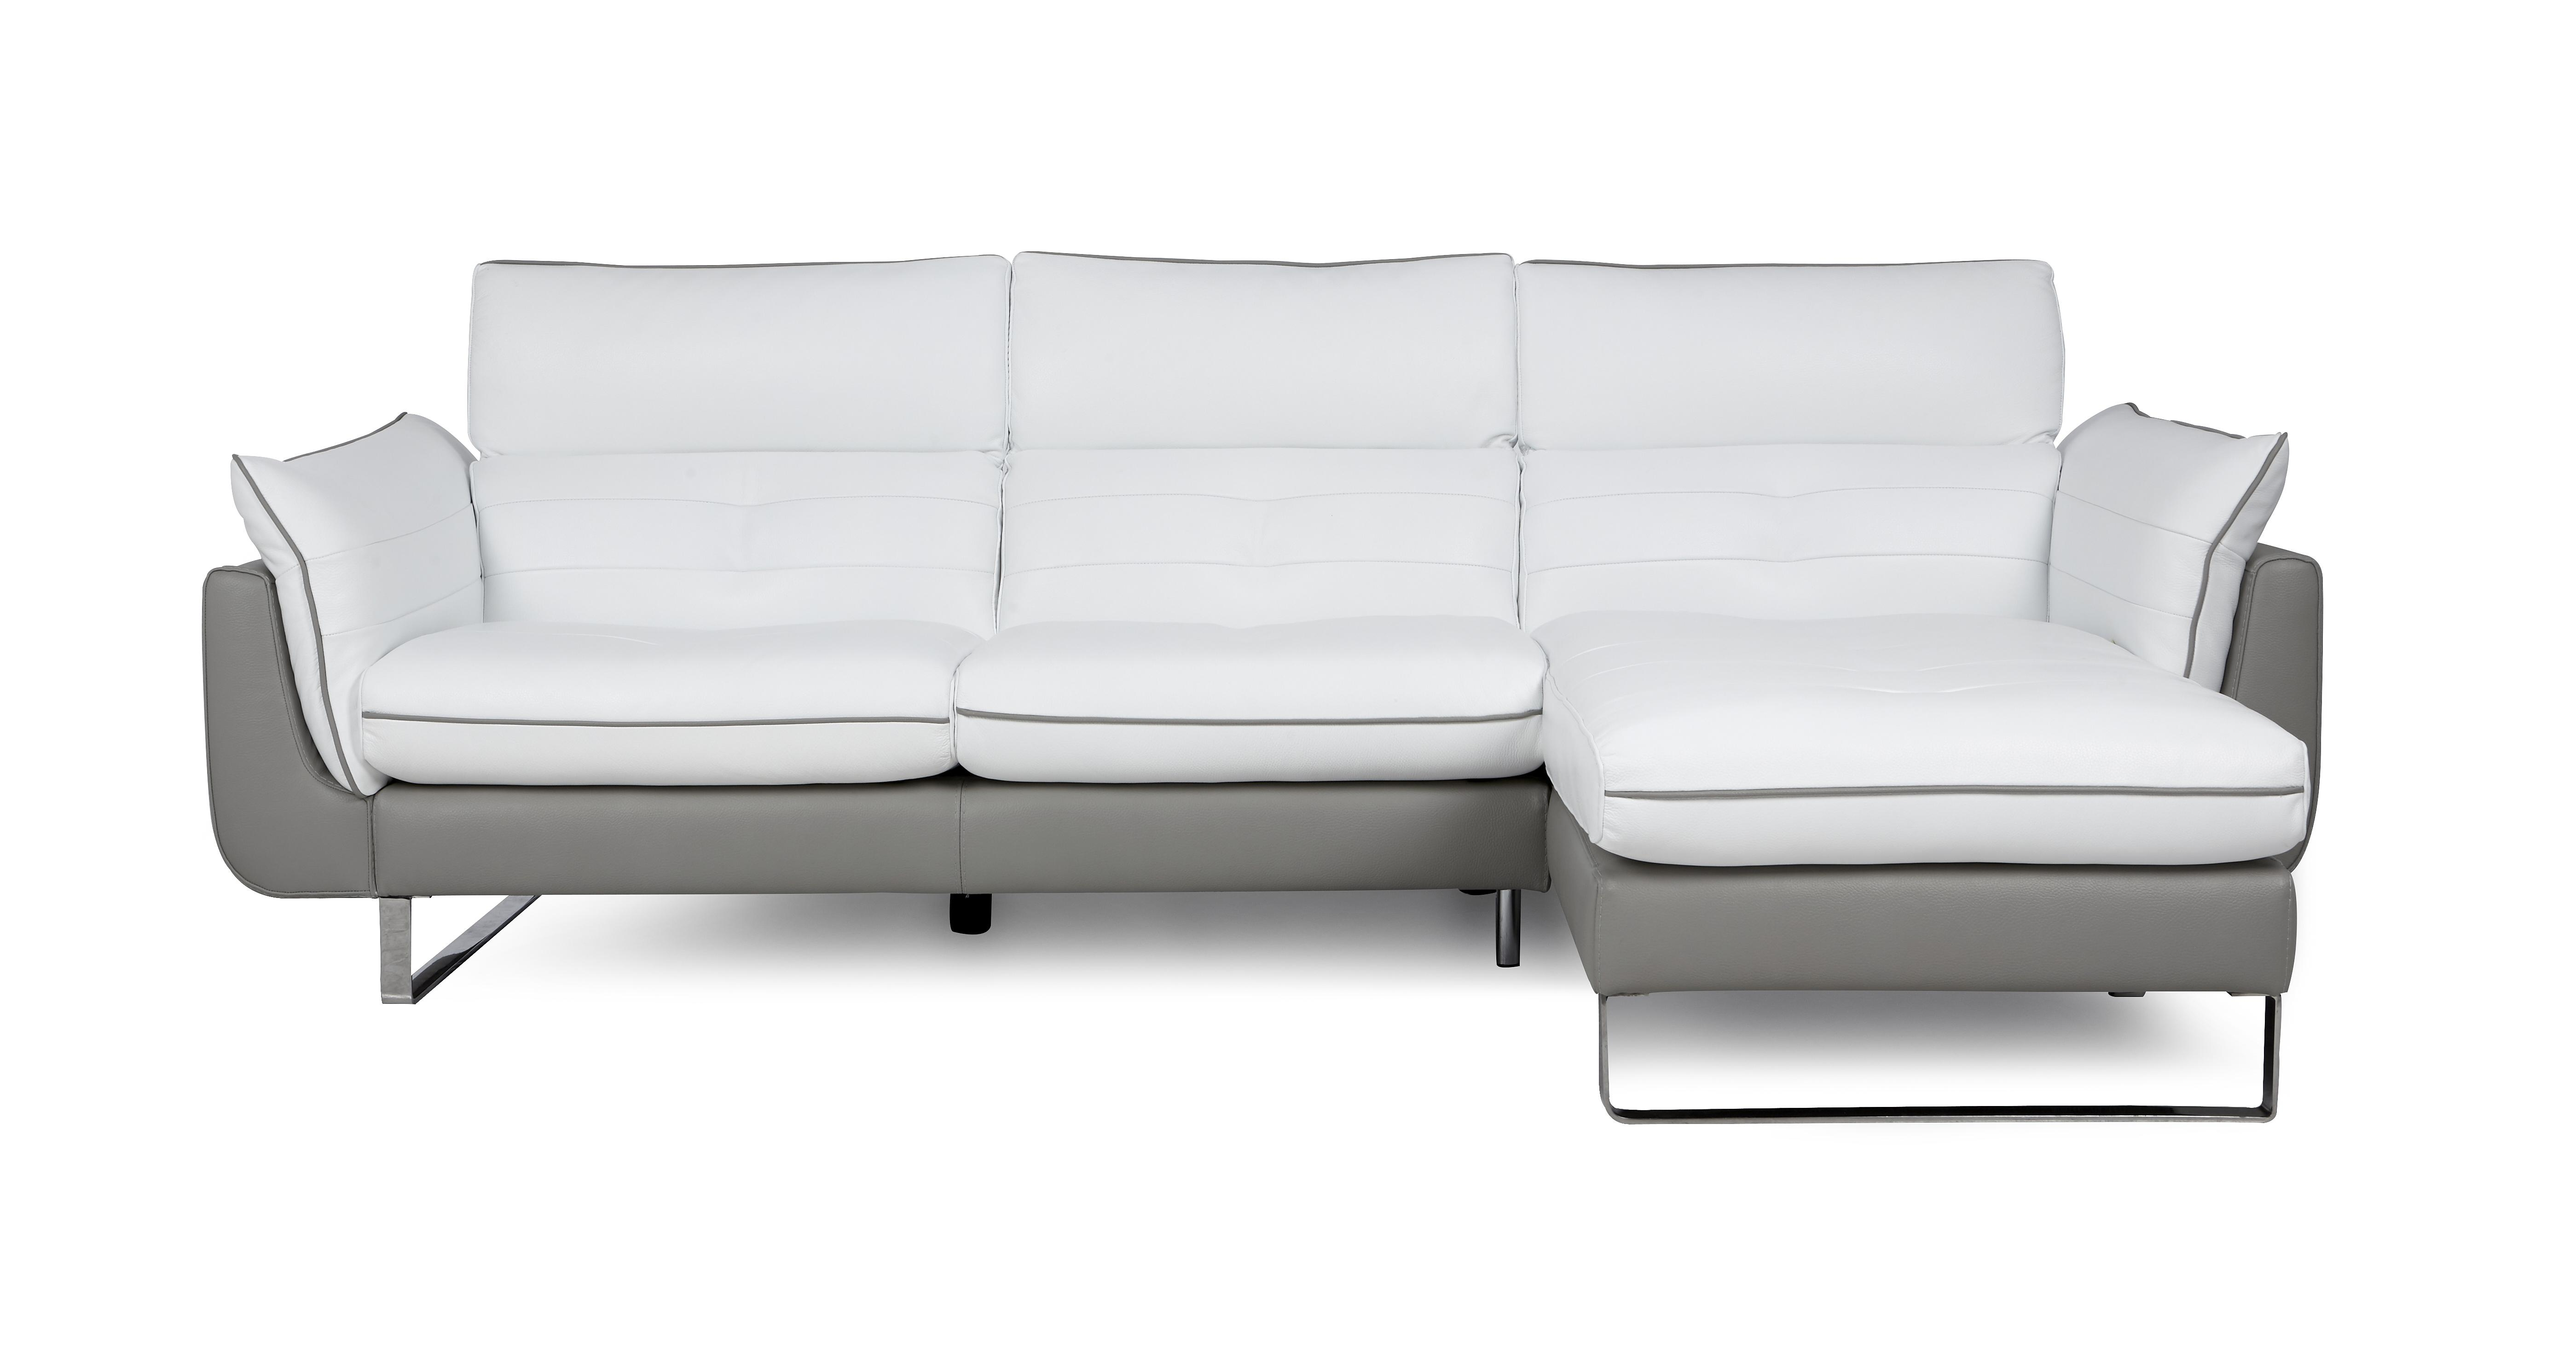 Positano right hand facing chaise end sofa taiga dfs for Chaise end sofa